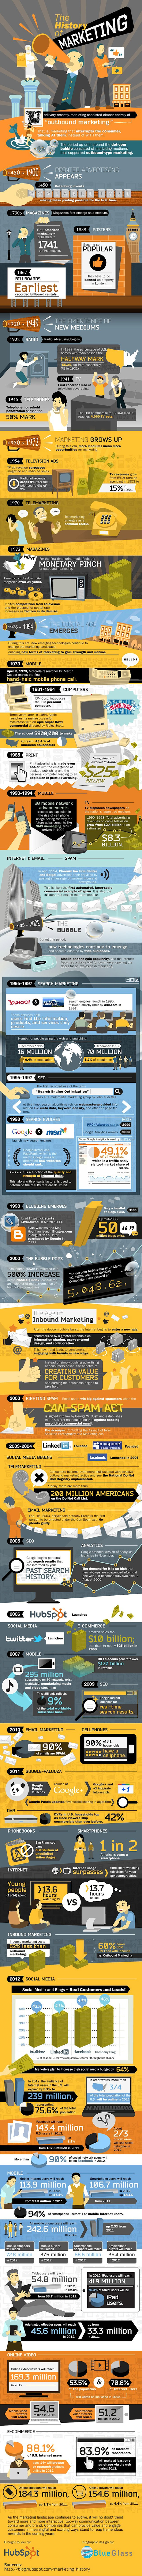 A (Kind of) Brief History of Marketing (Infographic)